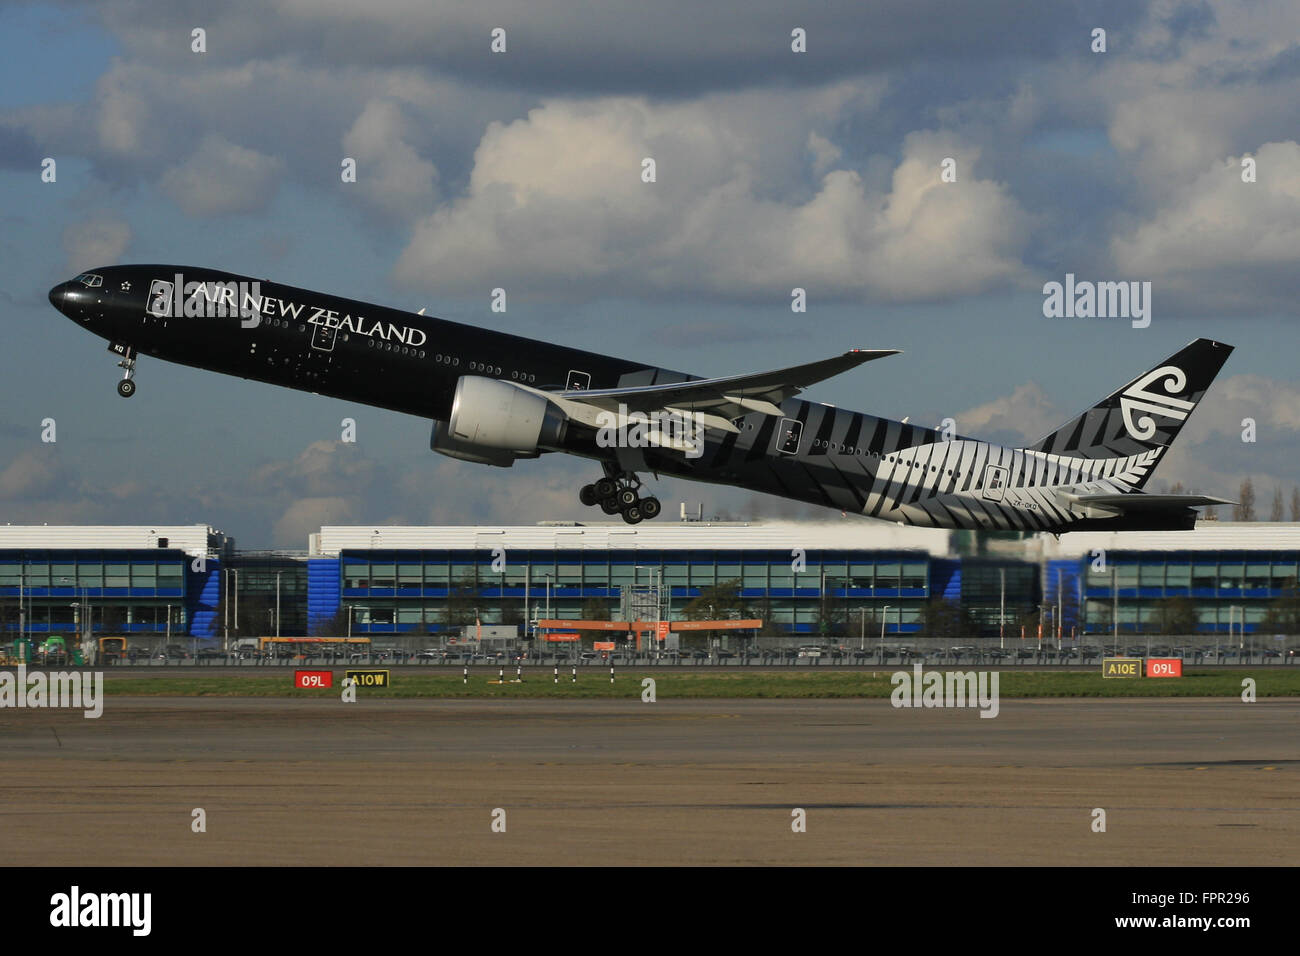 AIR New Zealand All Blacks 777 300 Imagen De Stock